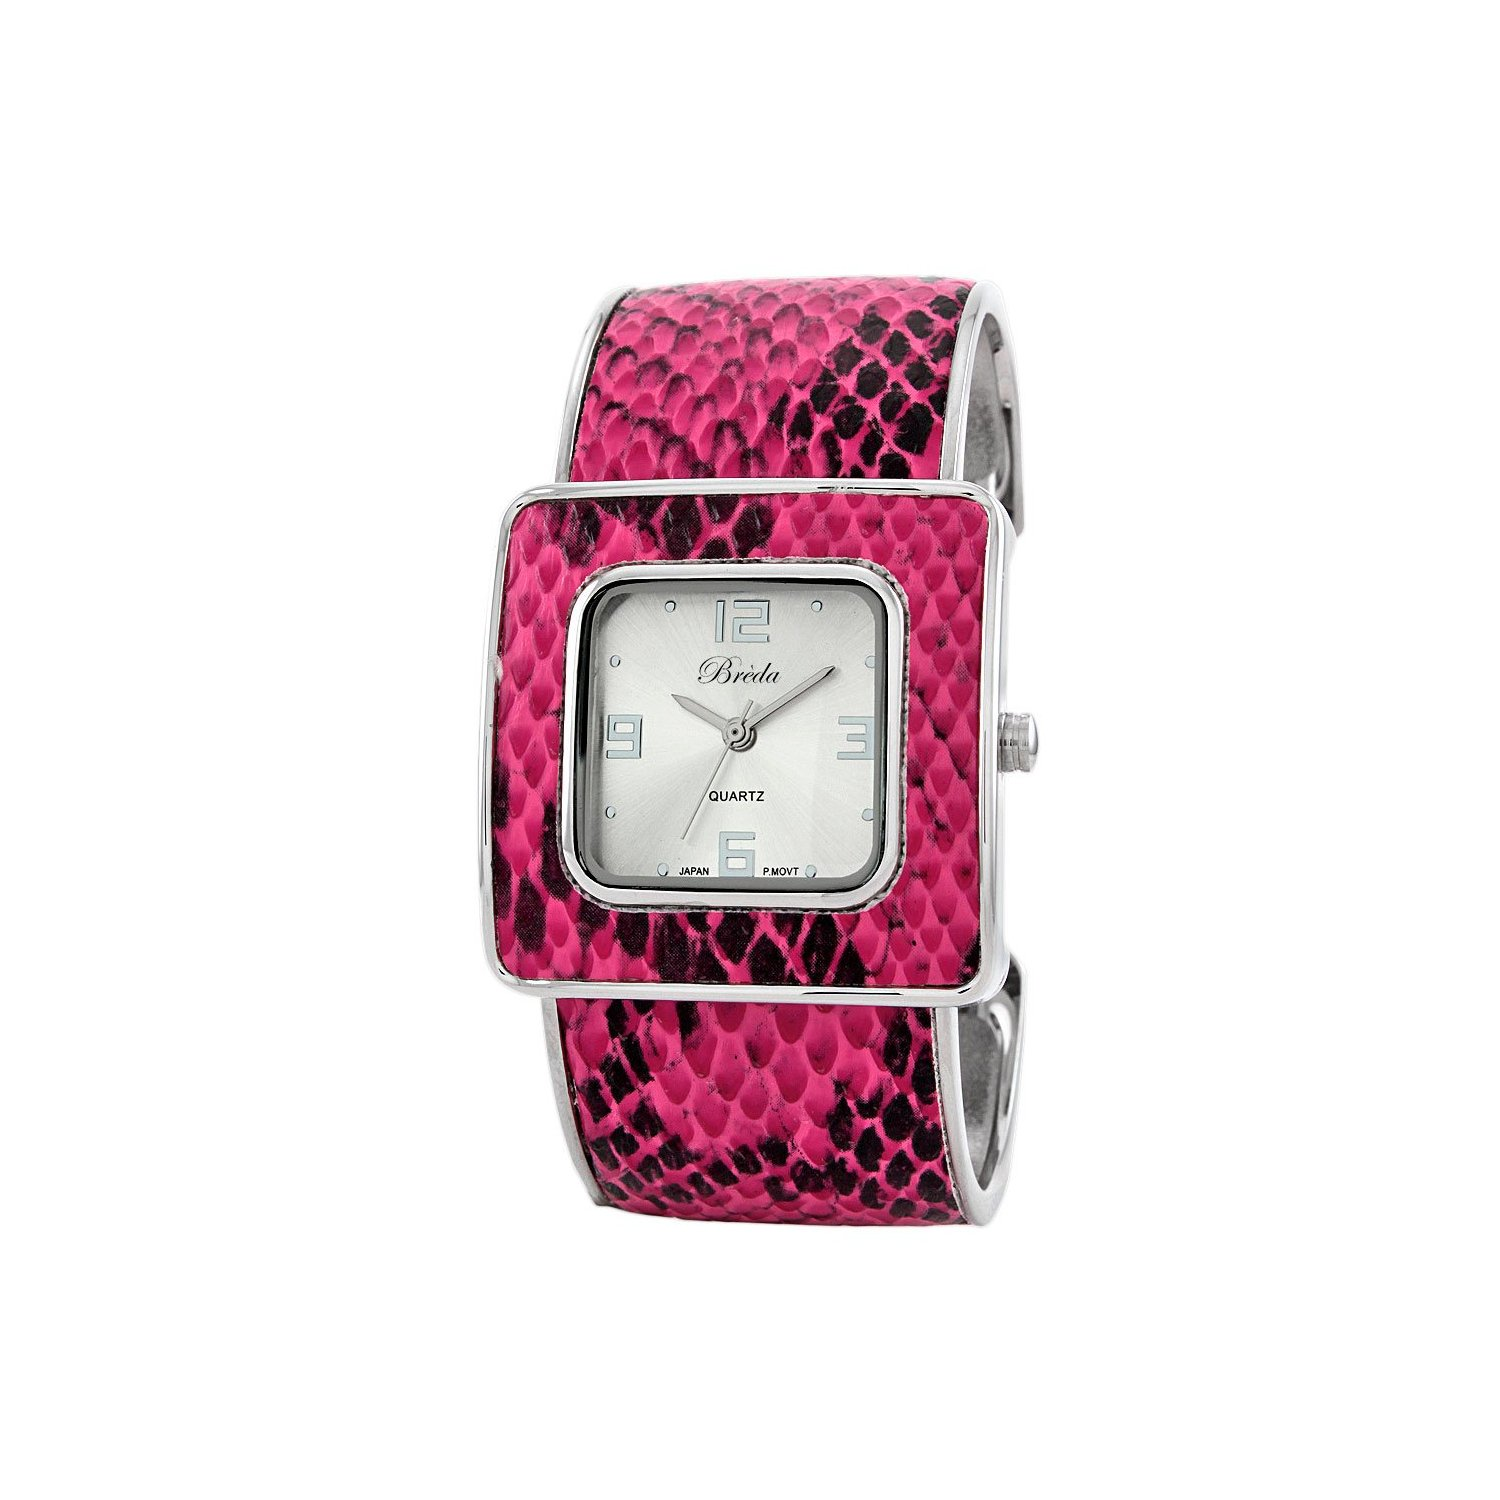 Breda Pink Snake Skin Leather Bangle Watch